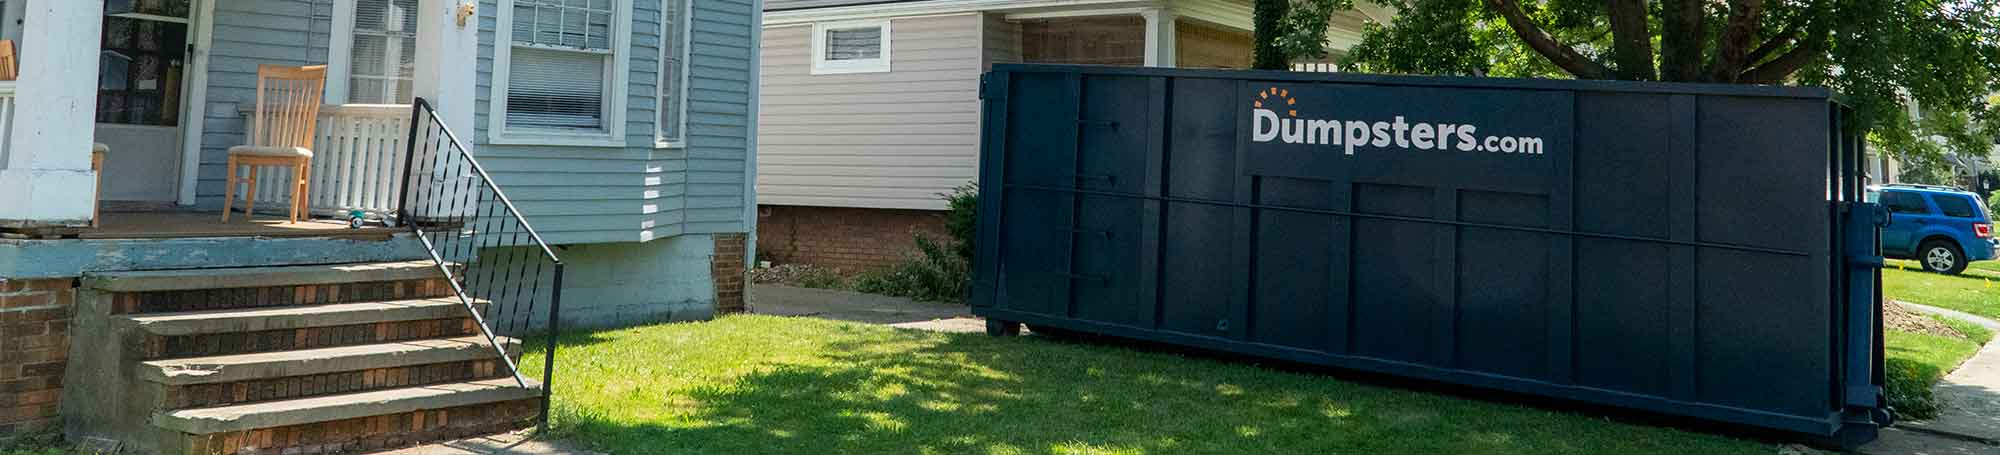 Roll Off Dumpster in Residential Driveway Next to Blue House.